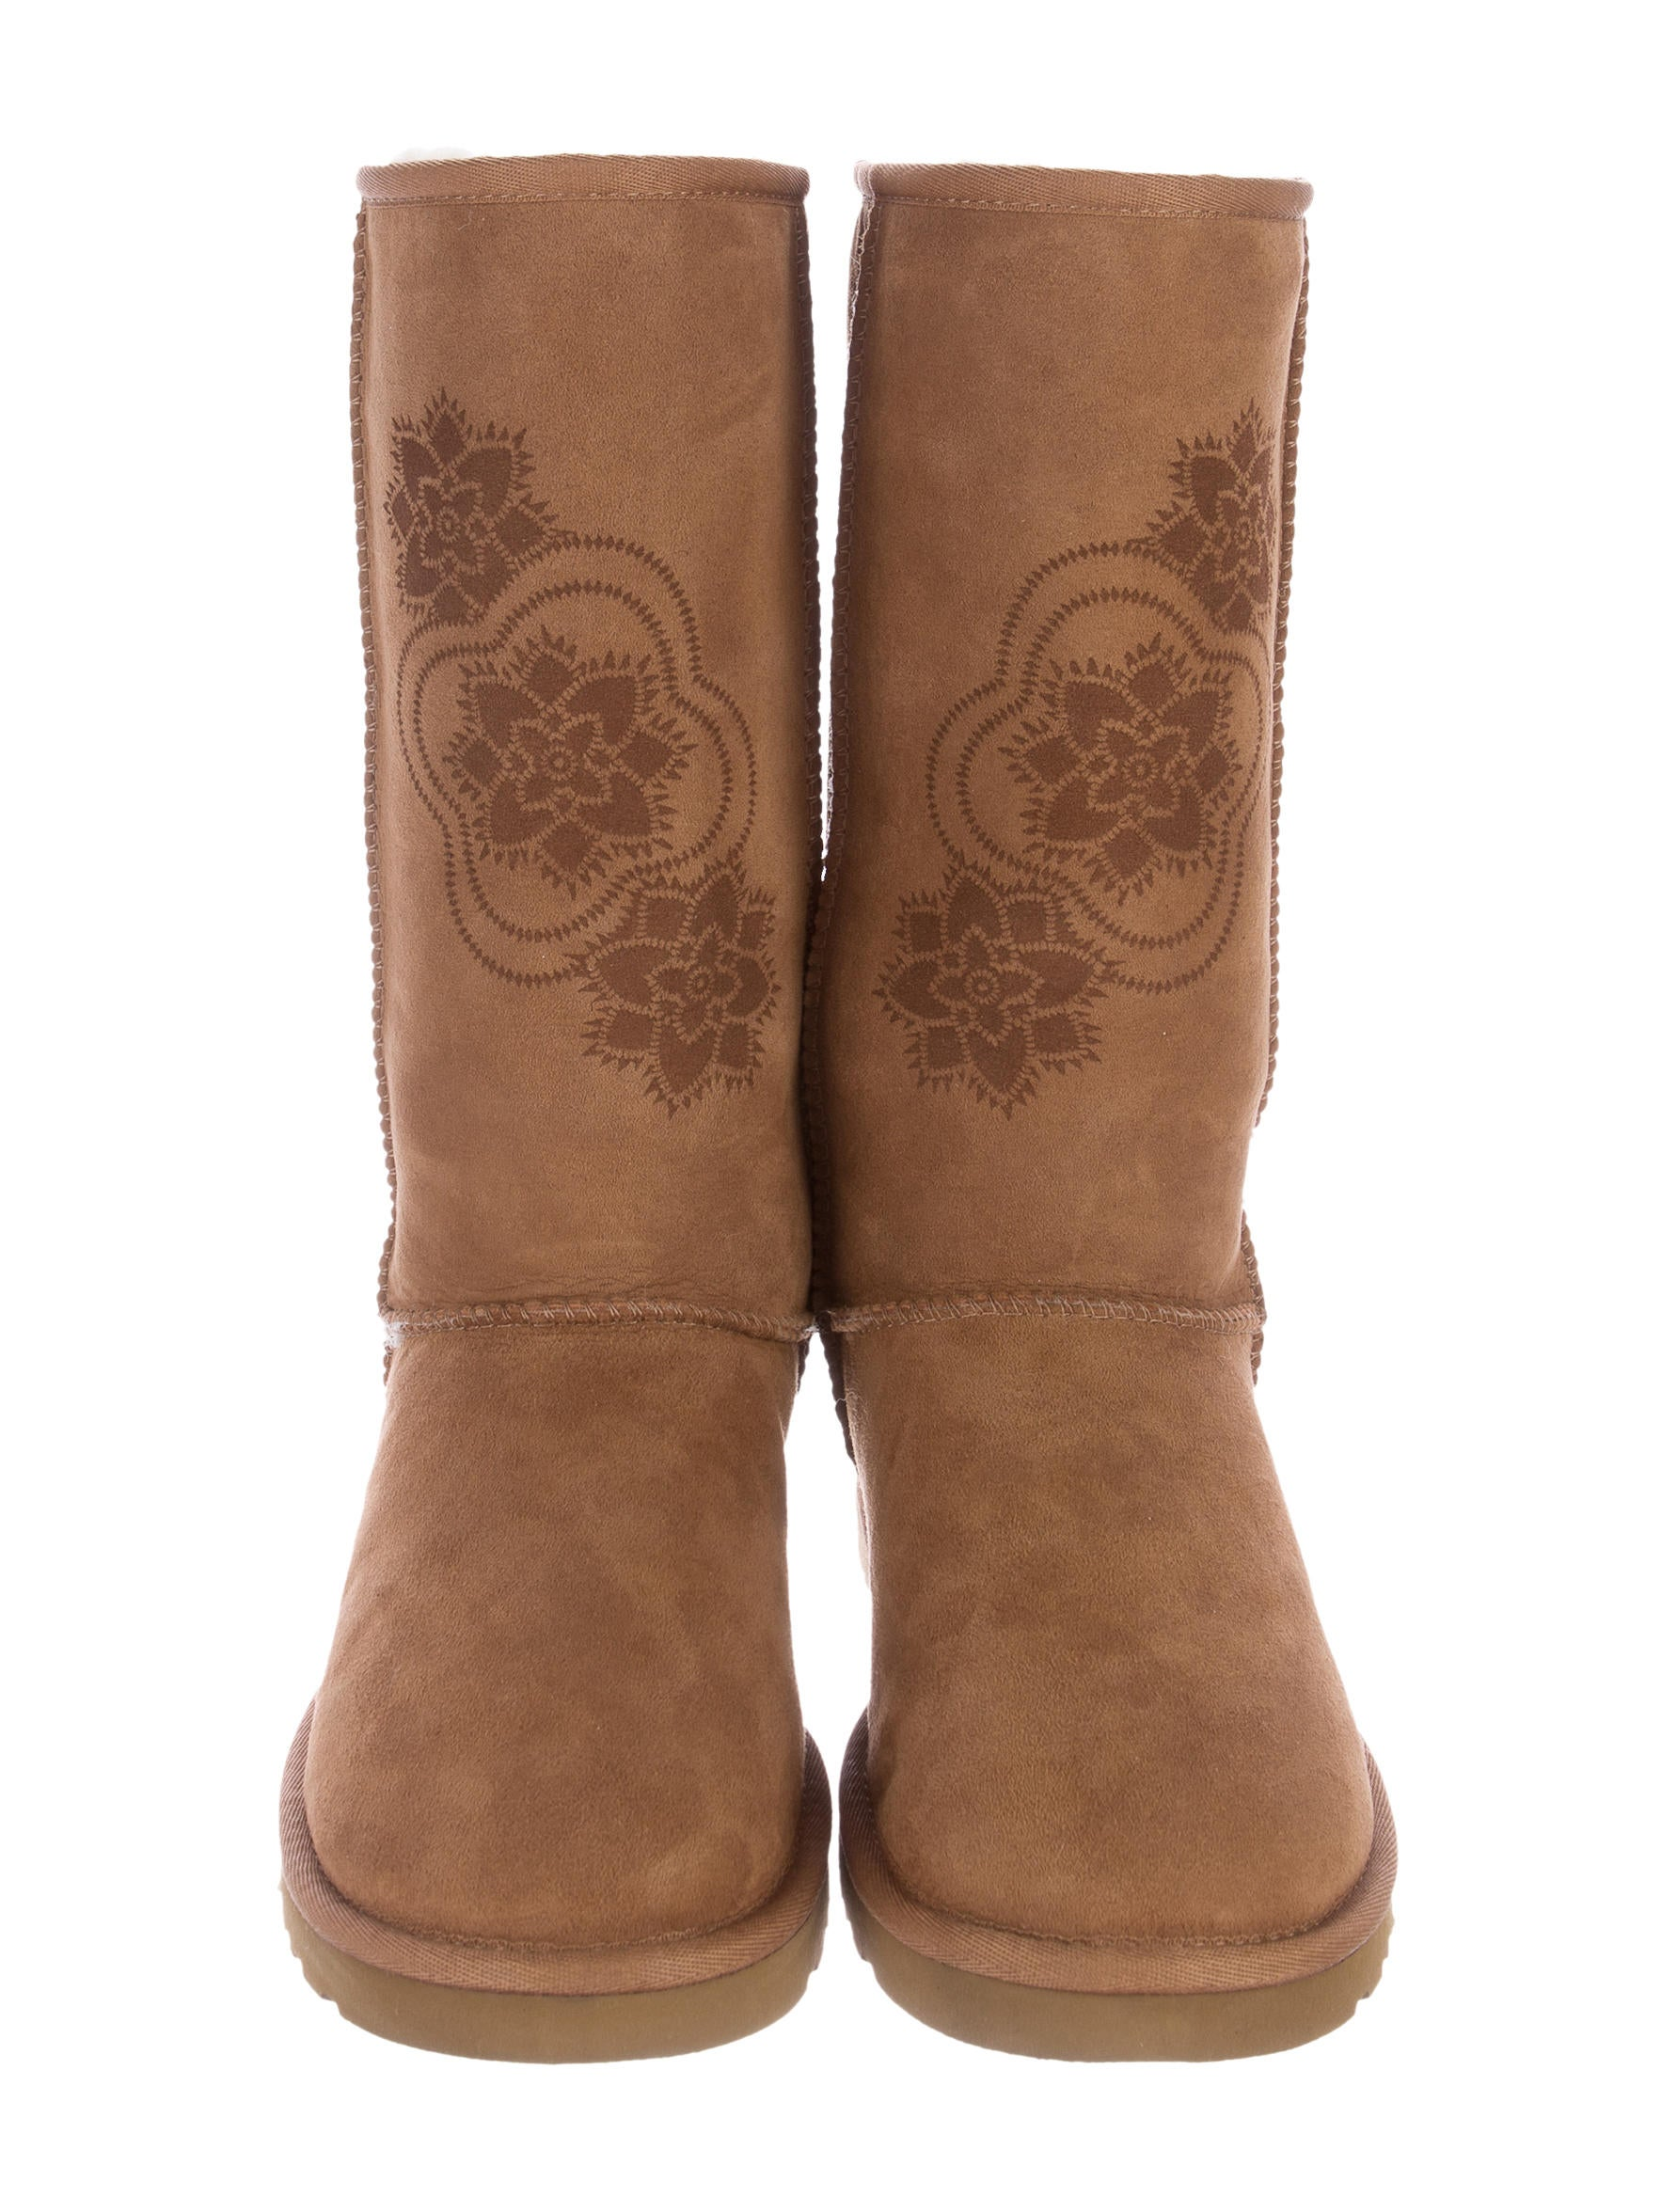 Embroidered Classic Tall Boots